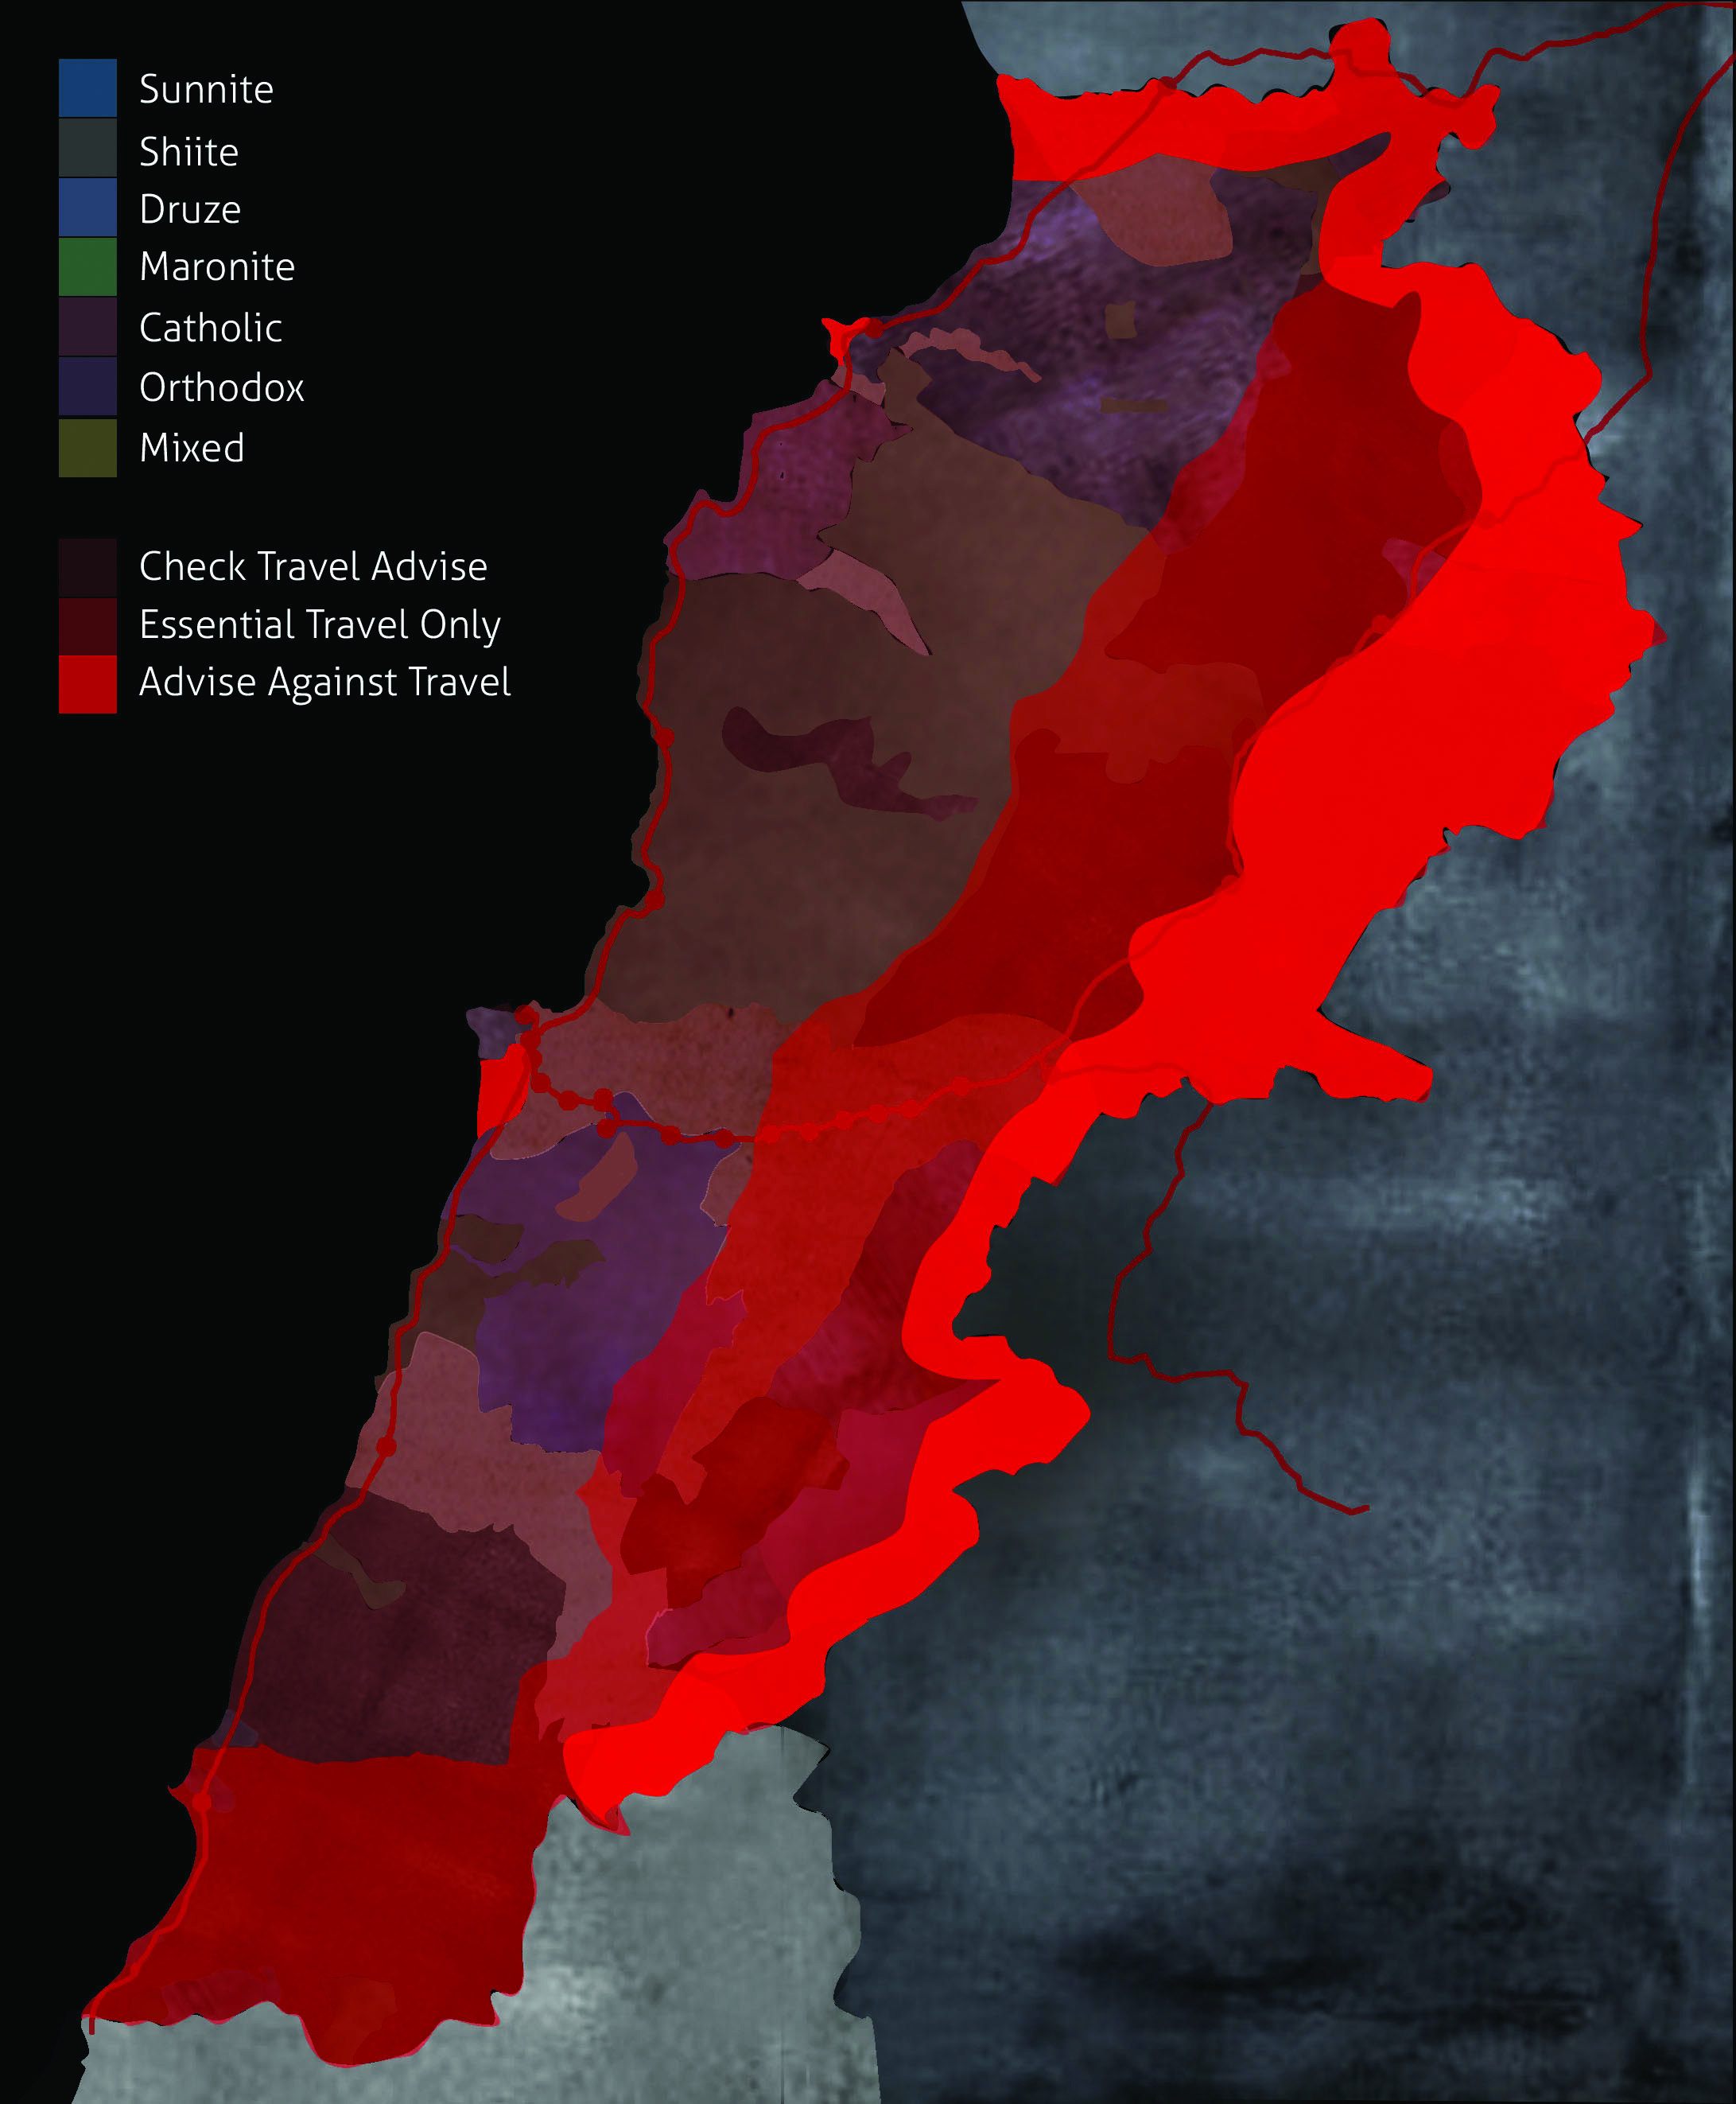 Map_religion and conflict_Lebanon.jpg